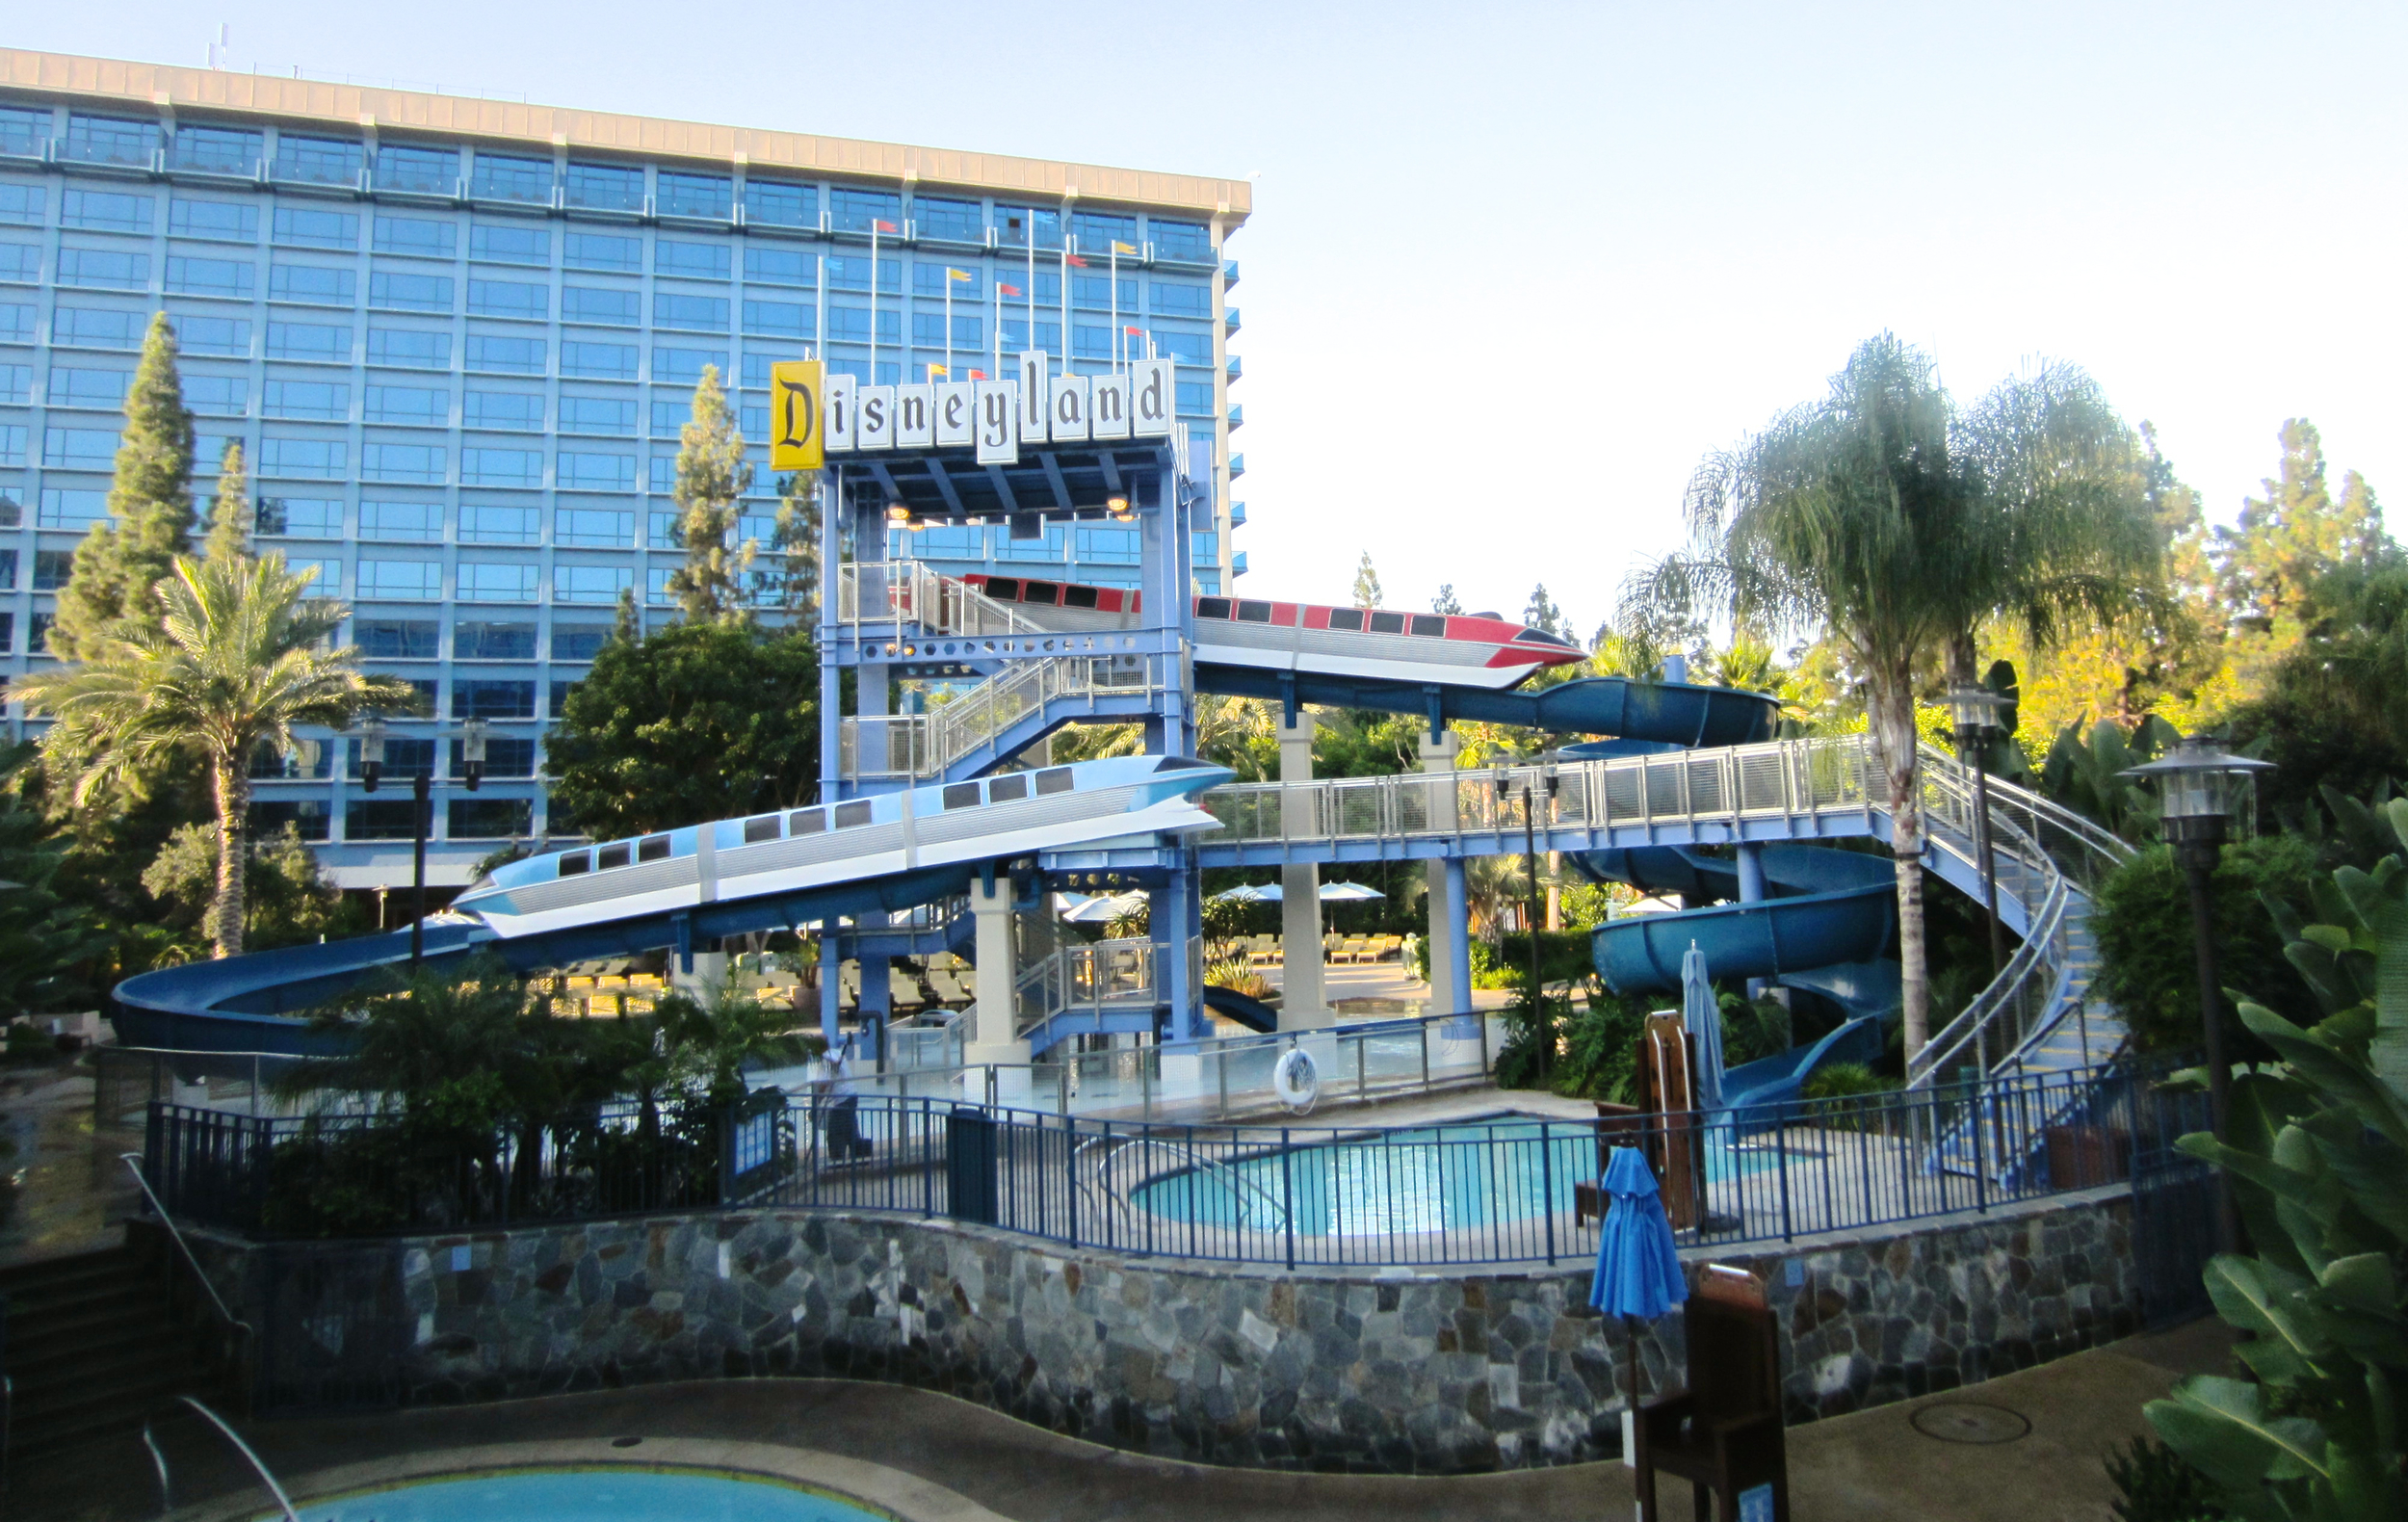 disneyland-hotel-monorail-pool.jpg